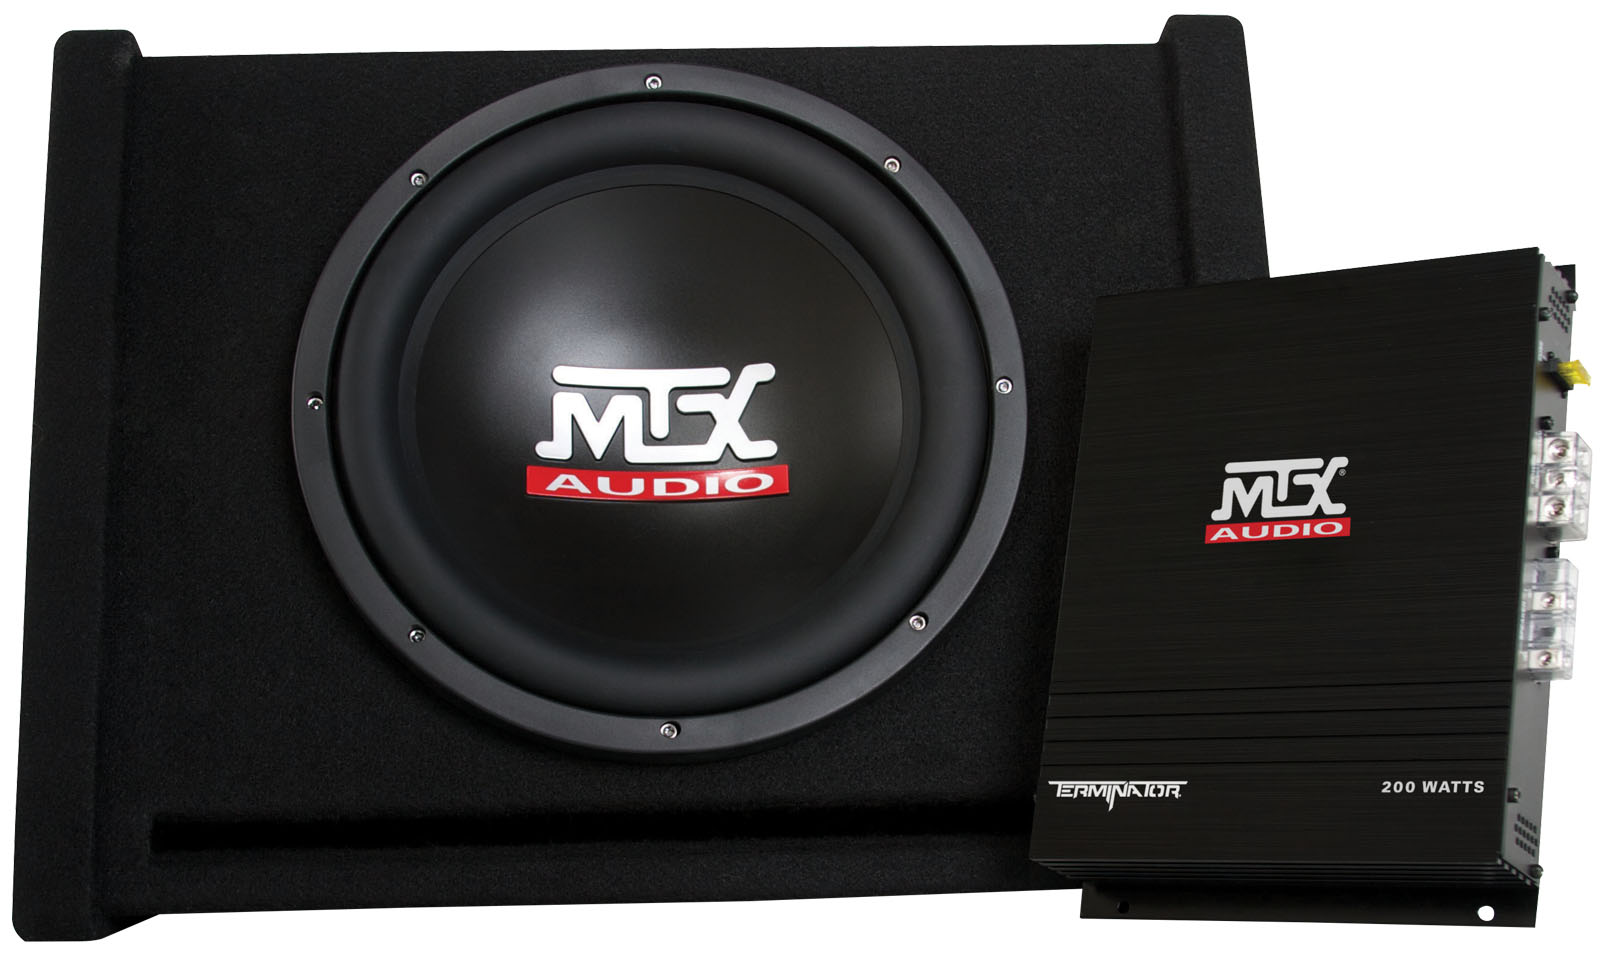 0004183_terminator tnp112d 12 inch 200w rms vented enclosure and mono block amplifier tnp112d mtx car subwoofer enclosure and amplifier mtx audio Terminator Time Loop Diagram at mifinder.co